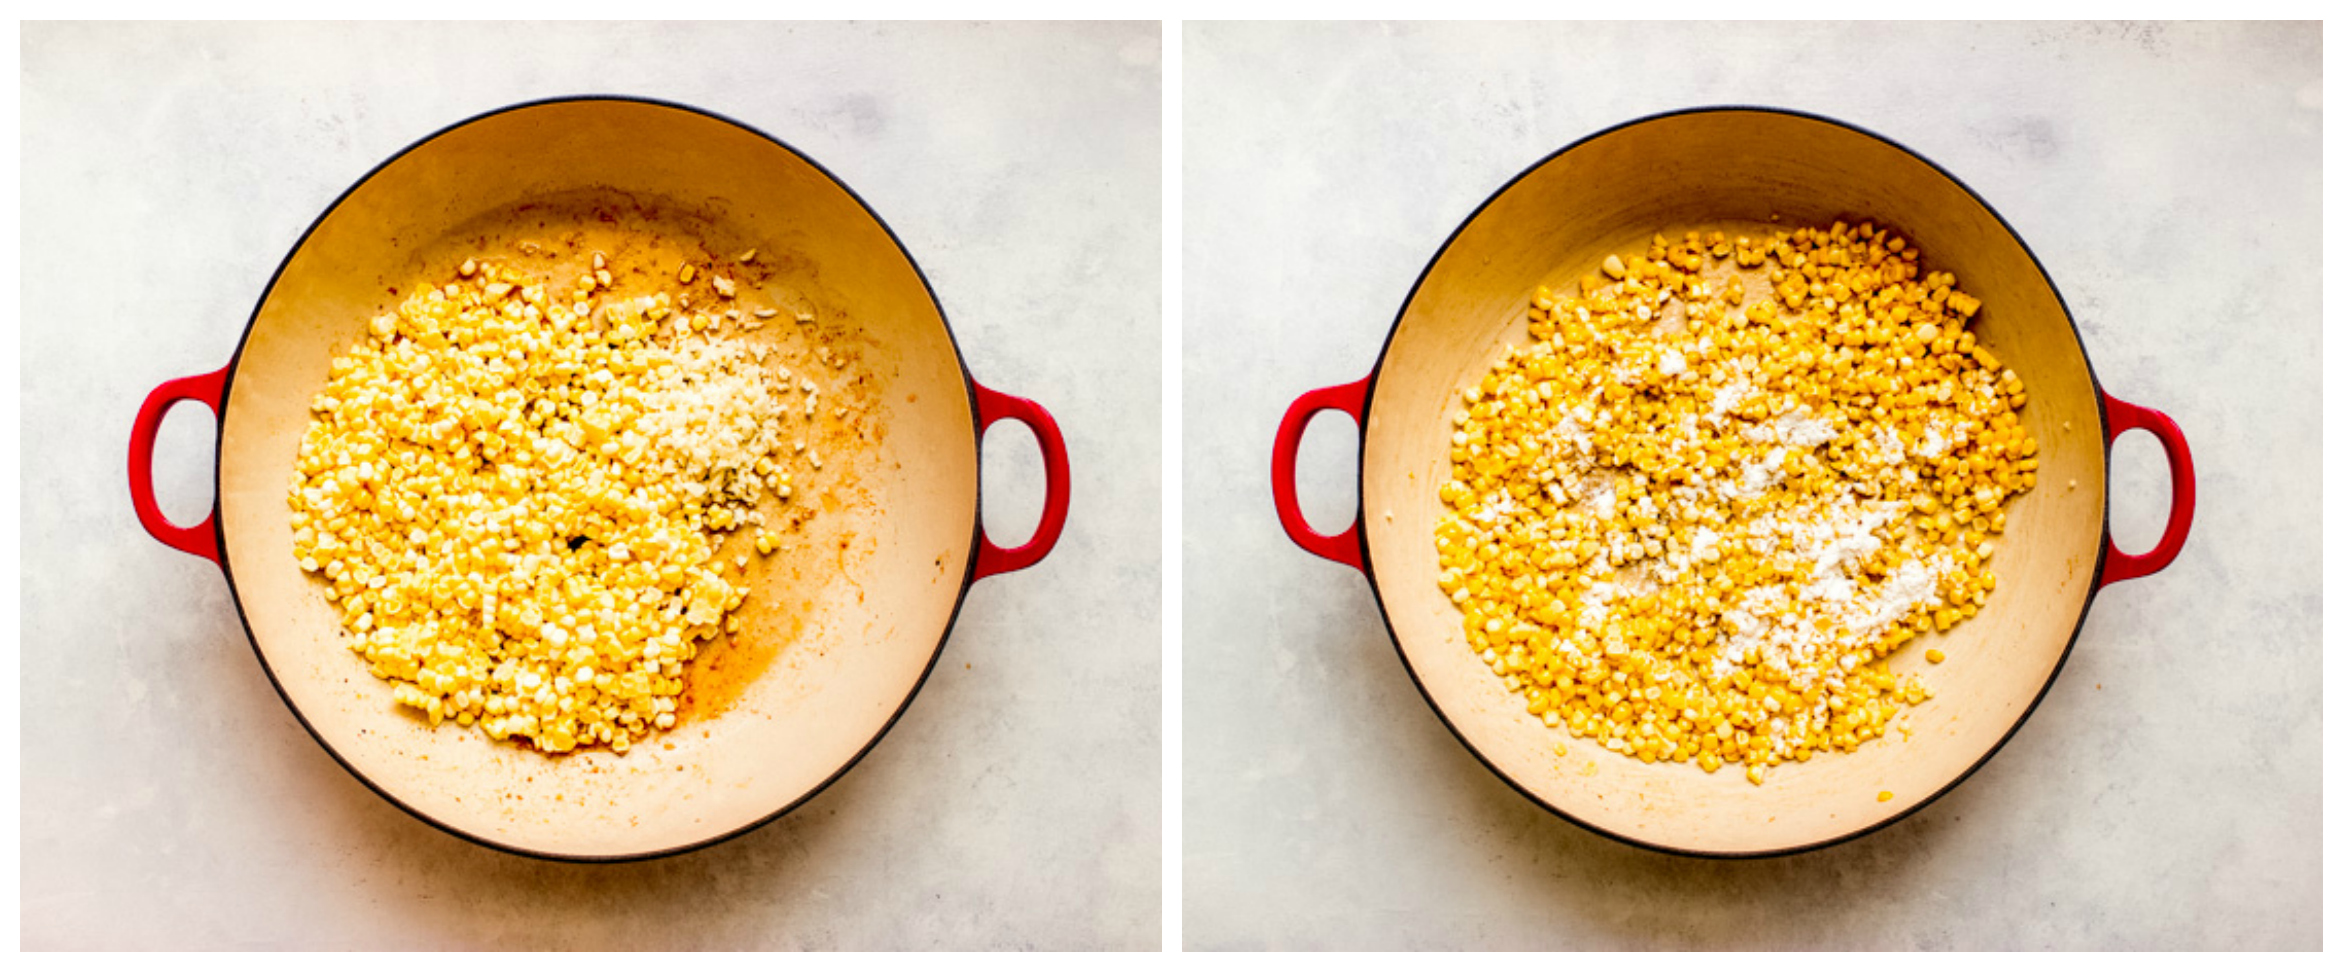 corn and garlic in pan